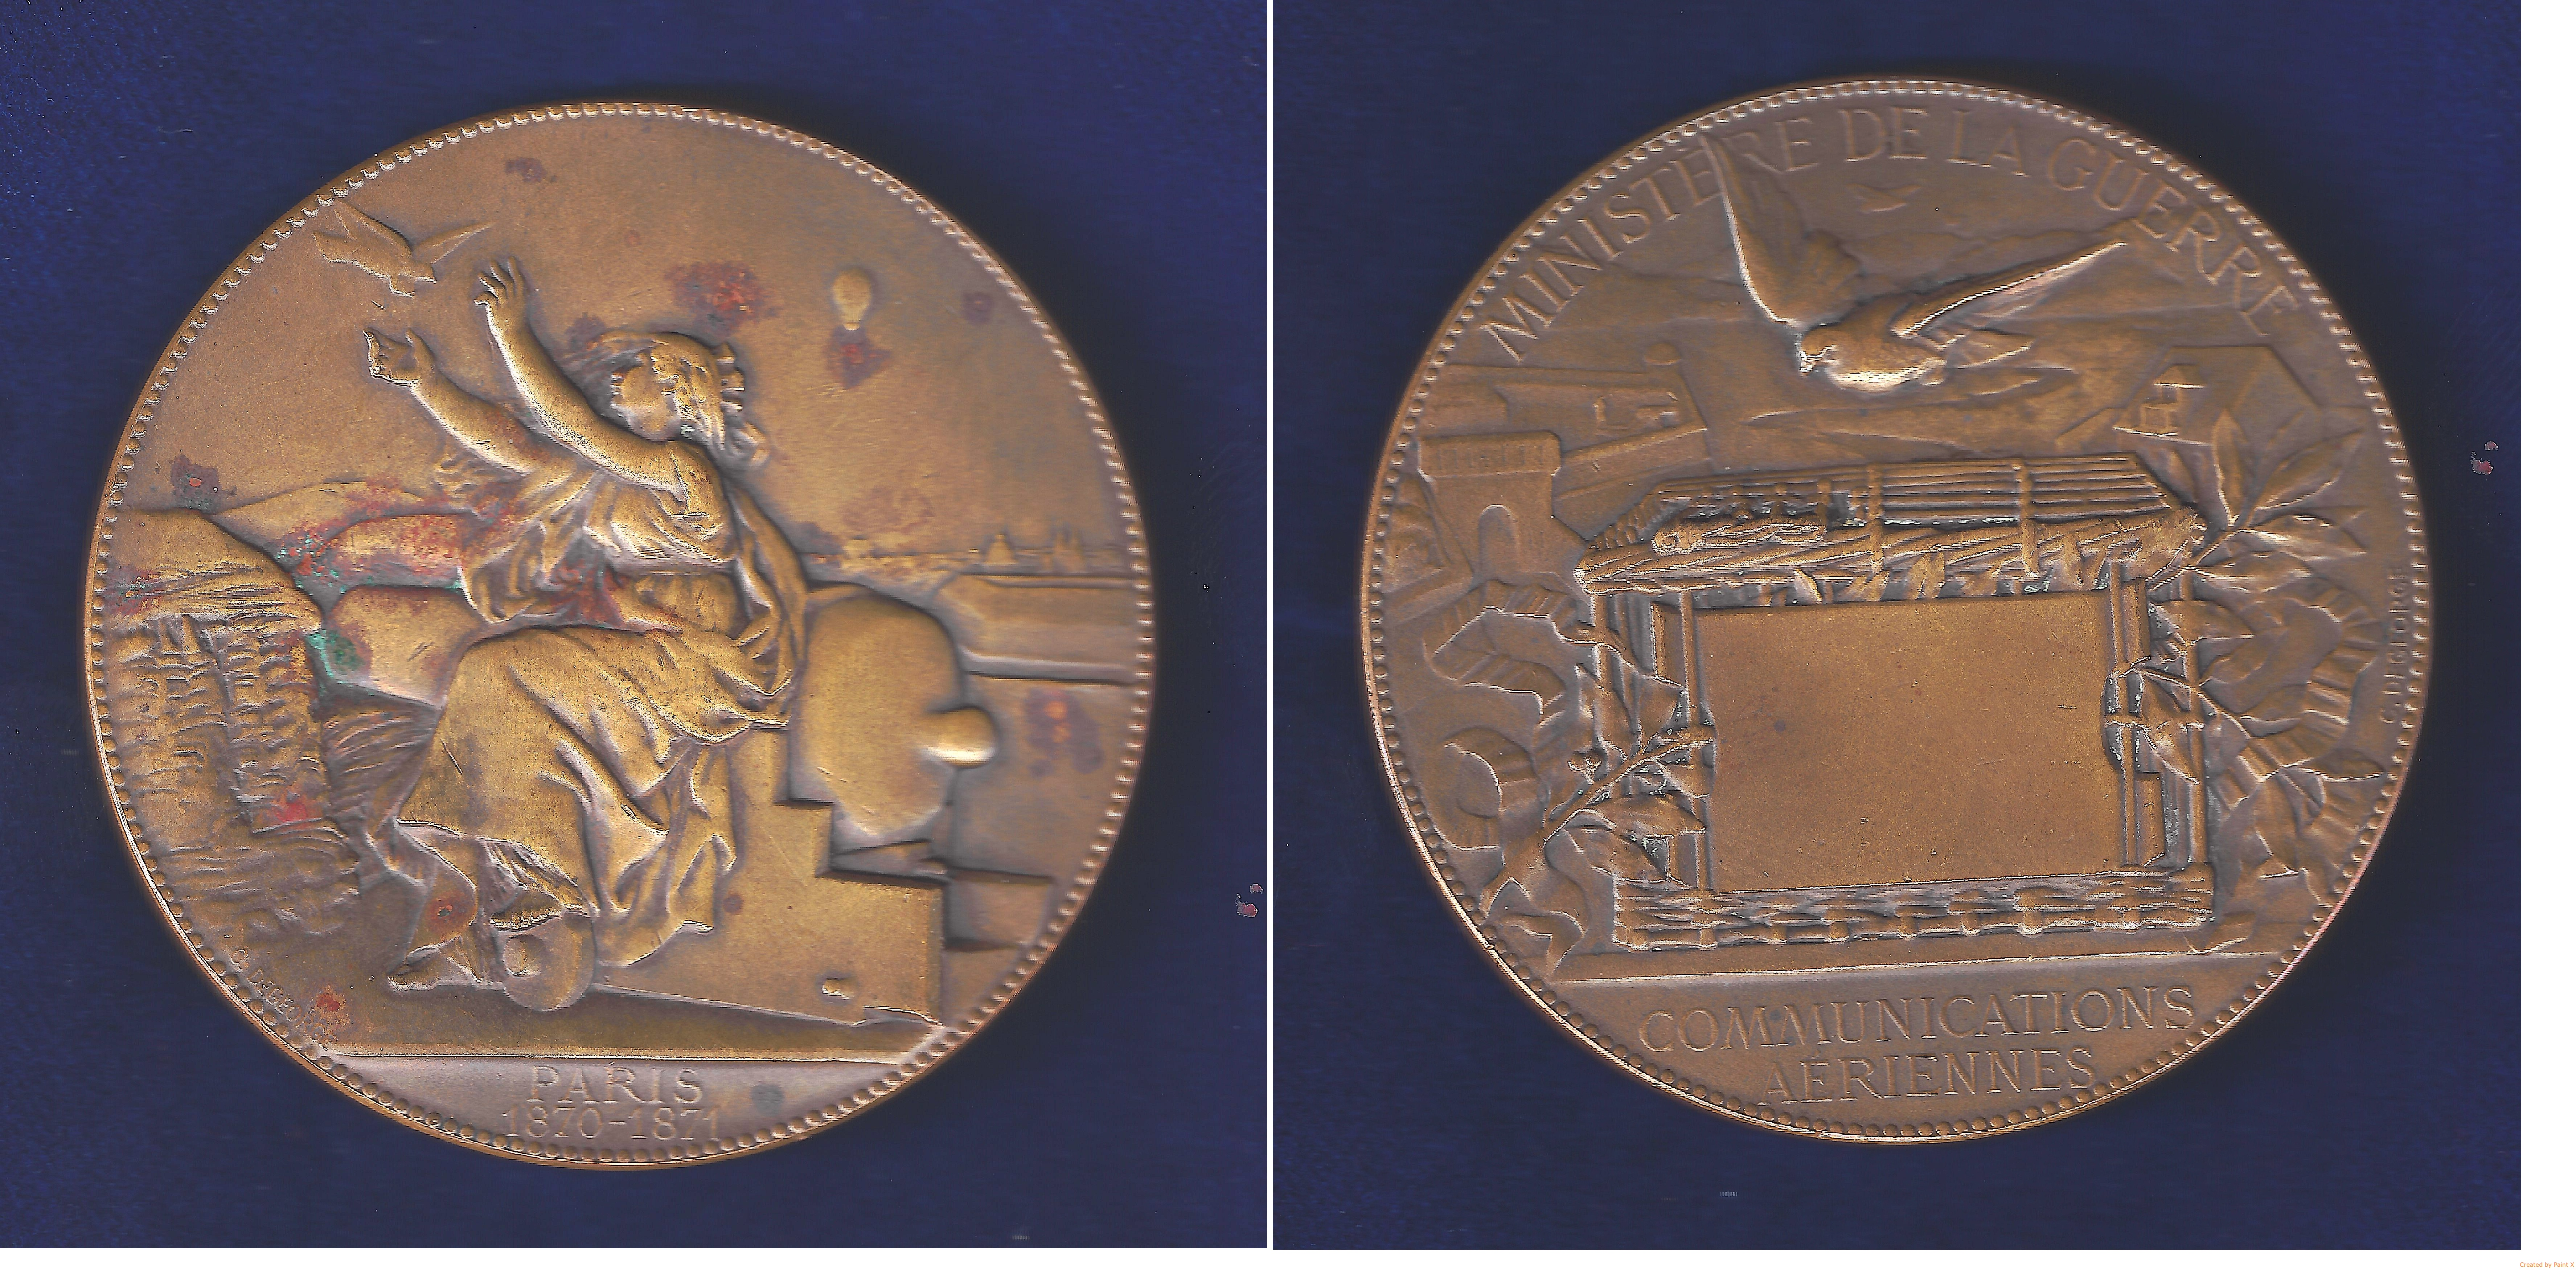 Bronze medallion marking the Paris Seige Pigeon Post created by artist Charles Degeorge for the French Military Communications in December 1871. A pigeon is released by the city goddess Lutetia sitting l. on a cannon. In the background up at r. a hot air balloon carrying homing pigeons. 2 lines in exergue: